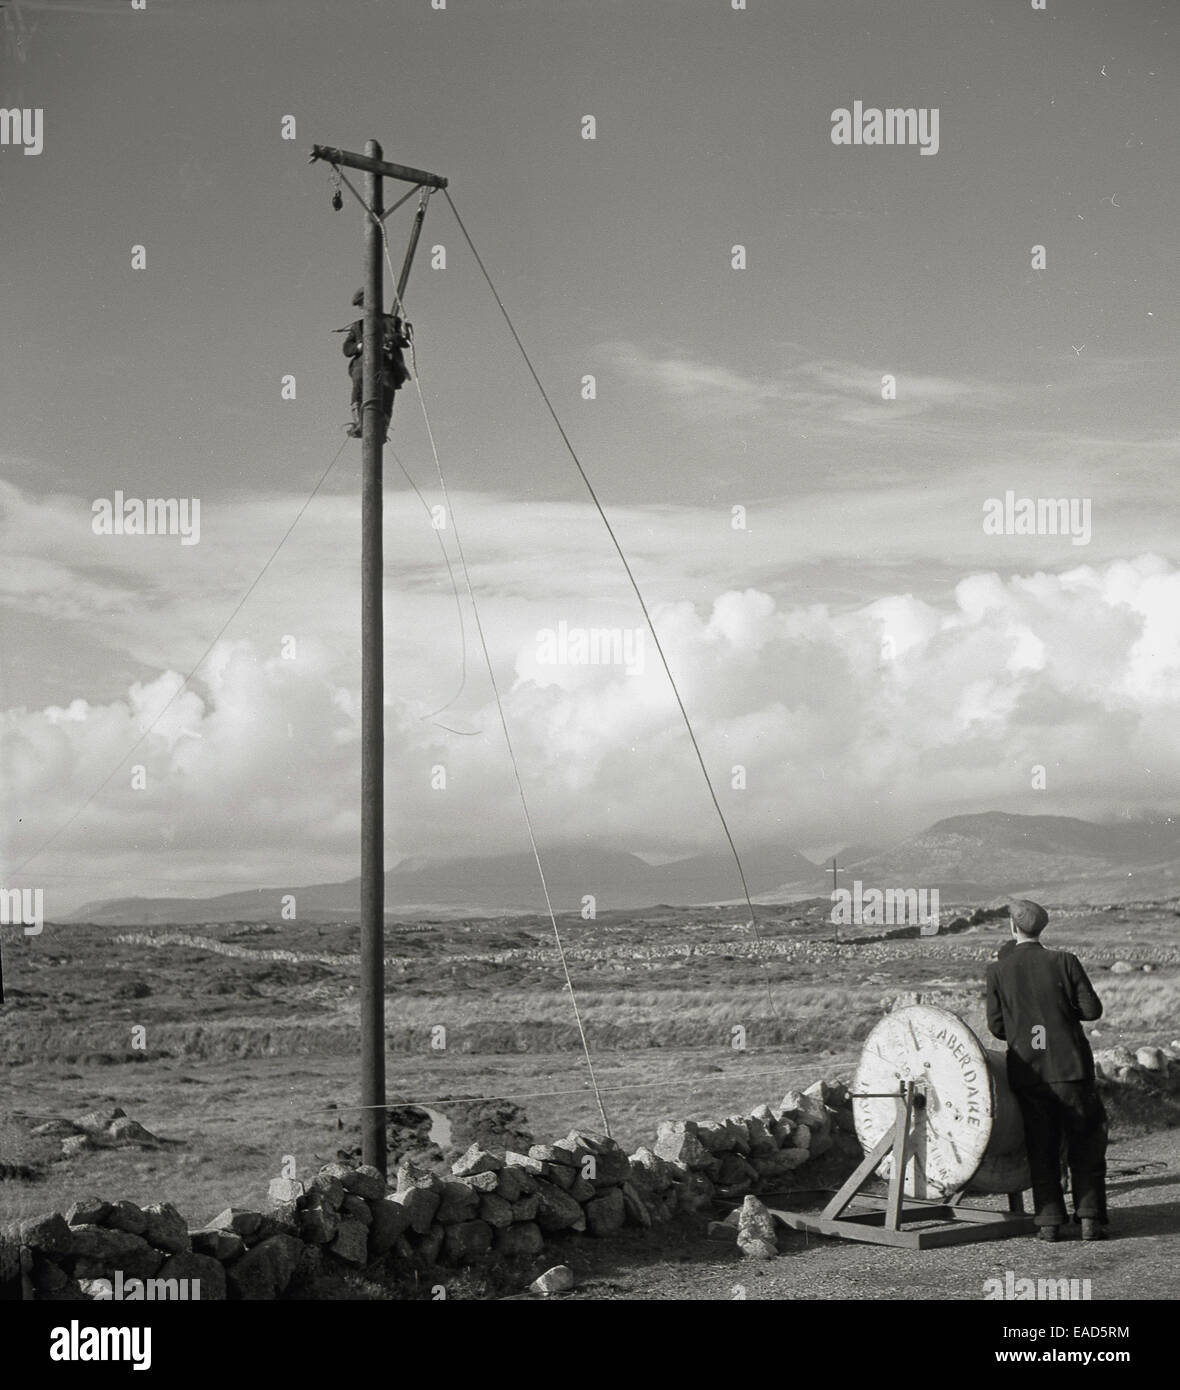 1950s historical picture of two male workers fixing telephone cables, one up the wooden pole, on a country lane - Stock Image